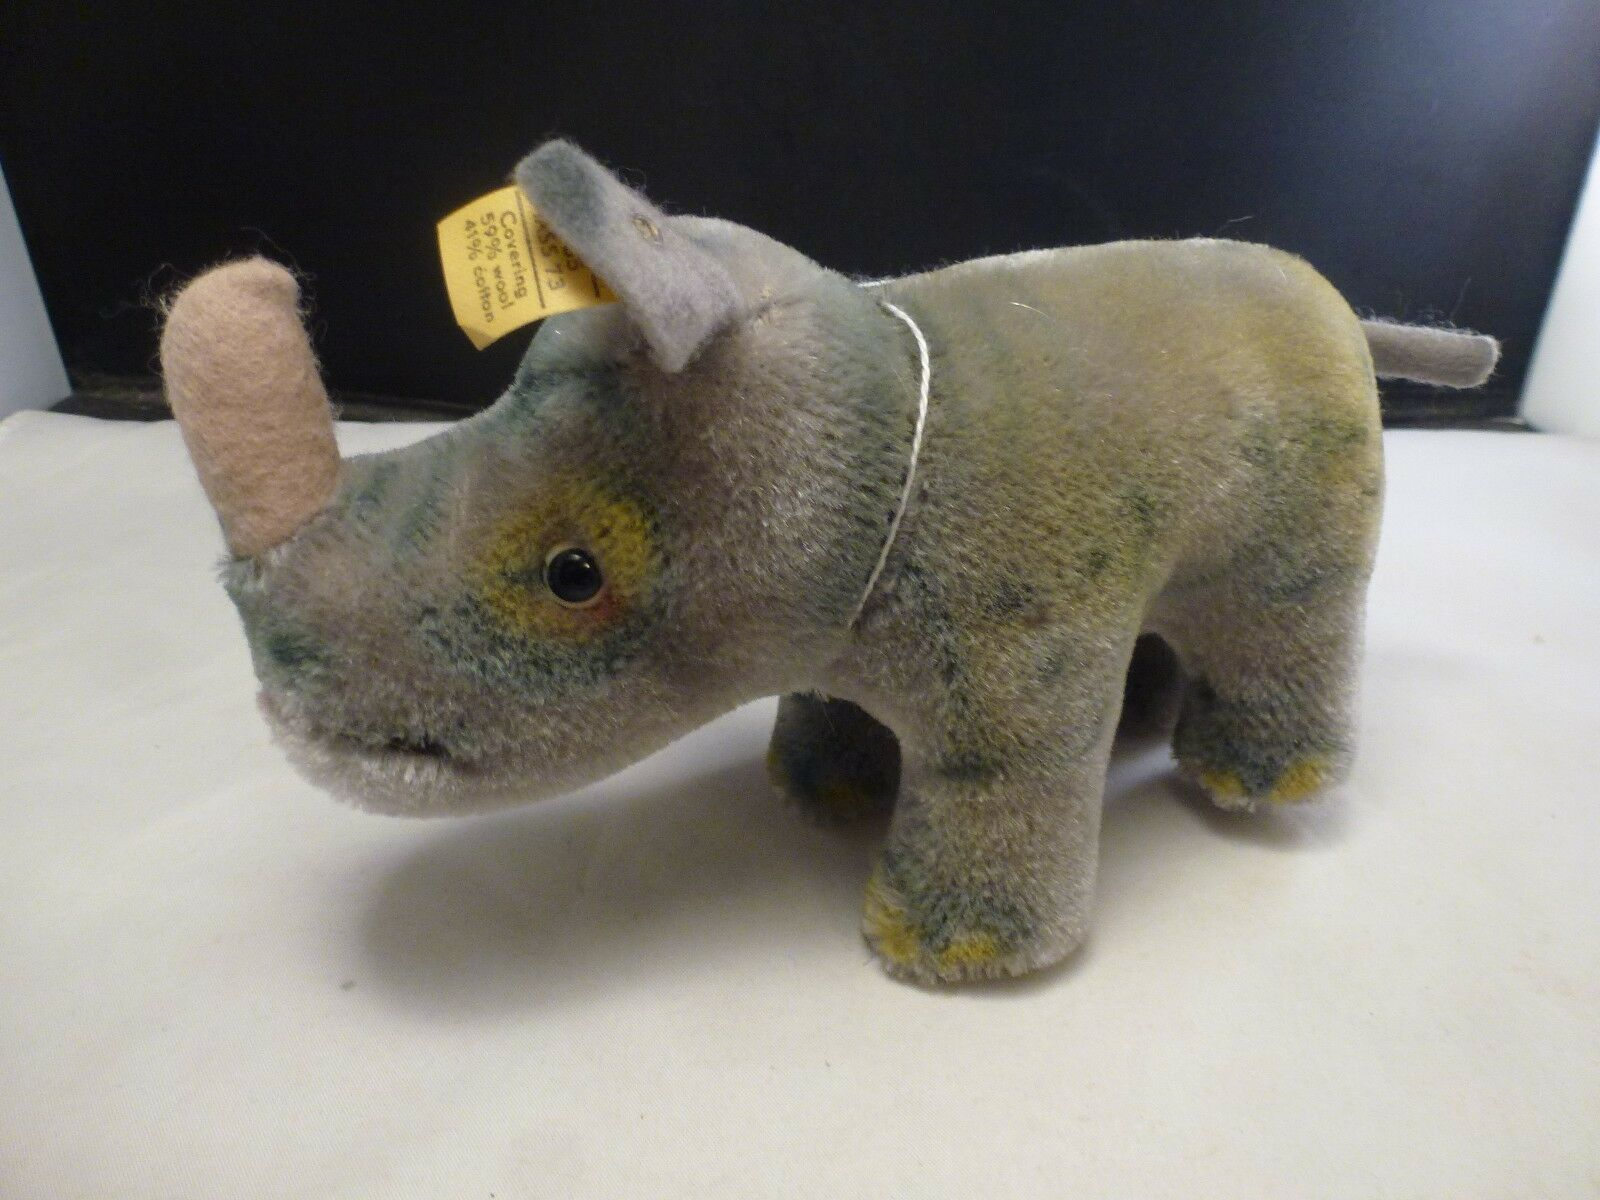 1968 Vintage Steiff Nosy Rhino Rhinoceros with button flag   GUMPS  1100/14